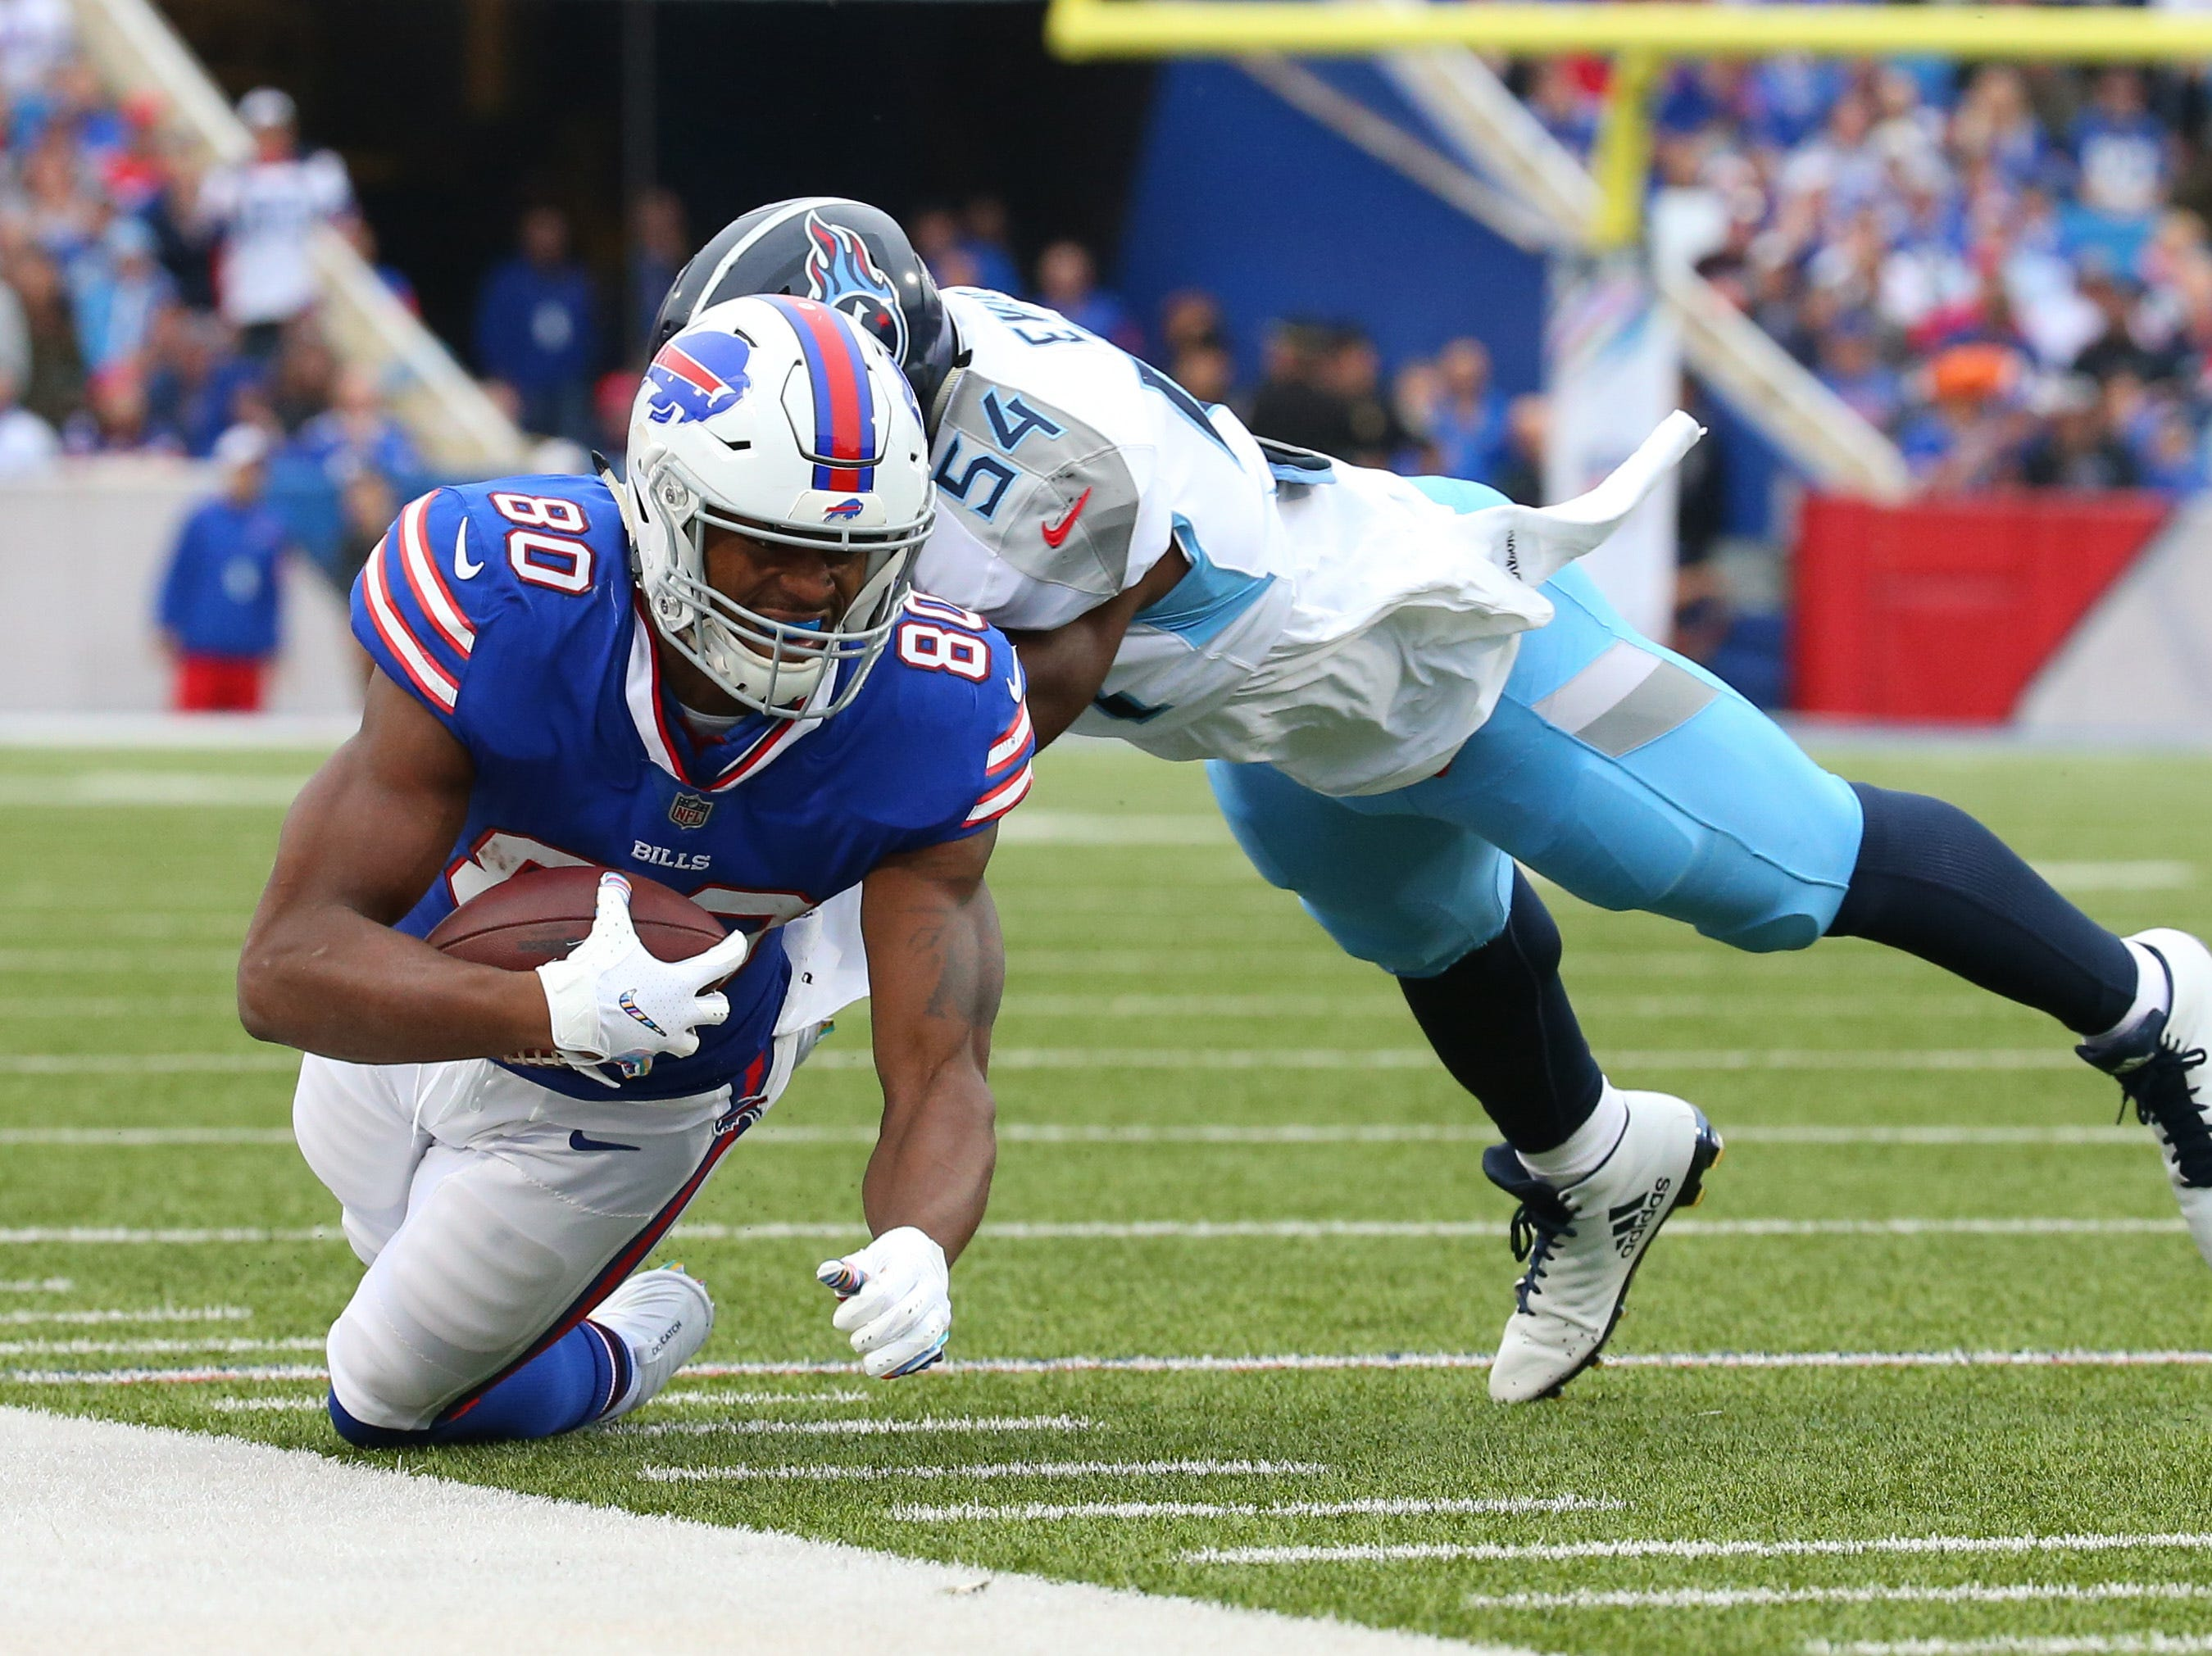 Oct 7, 2018; Orchard Park, NY, USA; Buffalo Bills tight end Jason Croom (80) dives for extra yards against Tennessee Titans linebacker Rashaan Evans (54) during the first quarter at New Era Field.